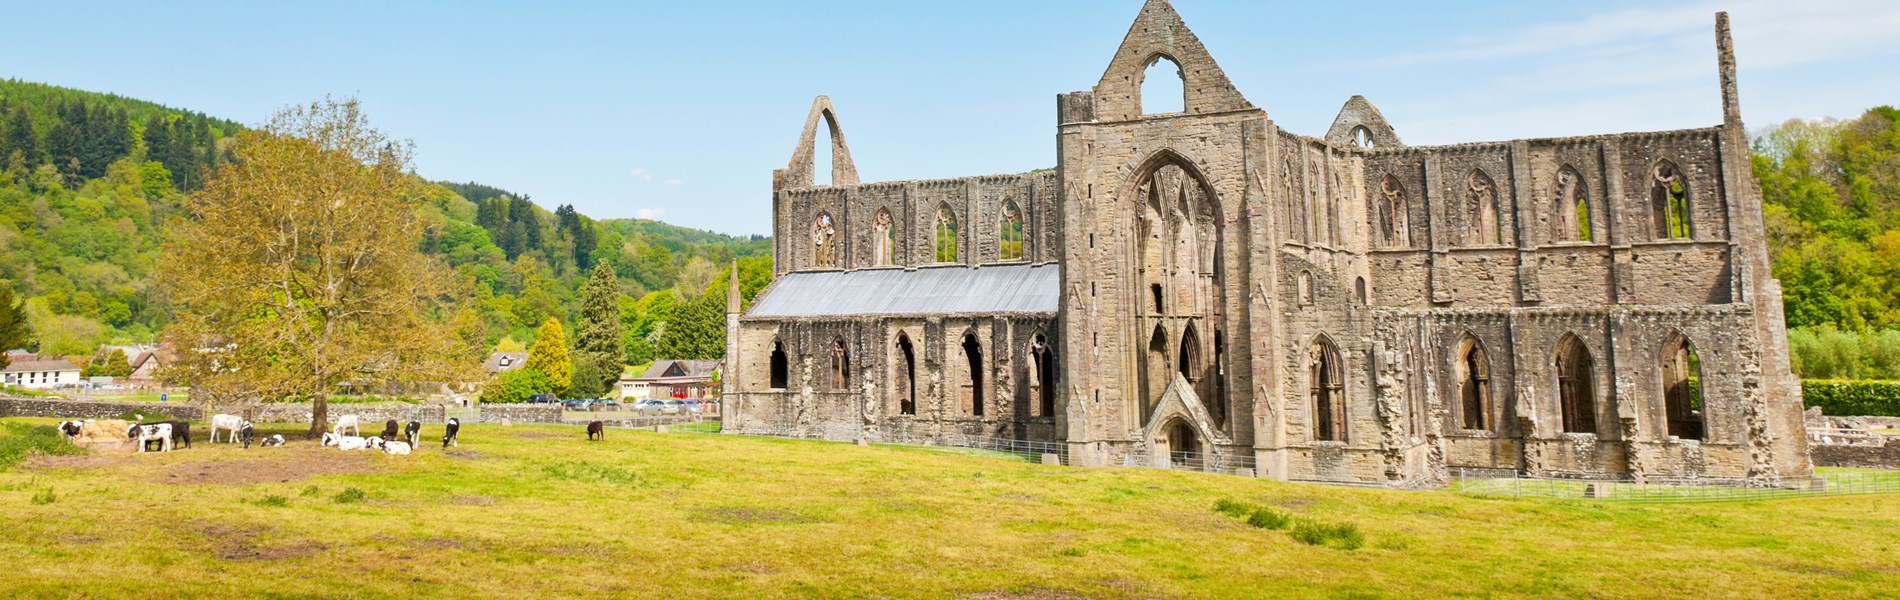 Tintern Abbey (Ancient Ruins).jpg